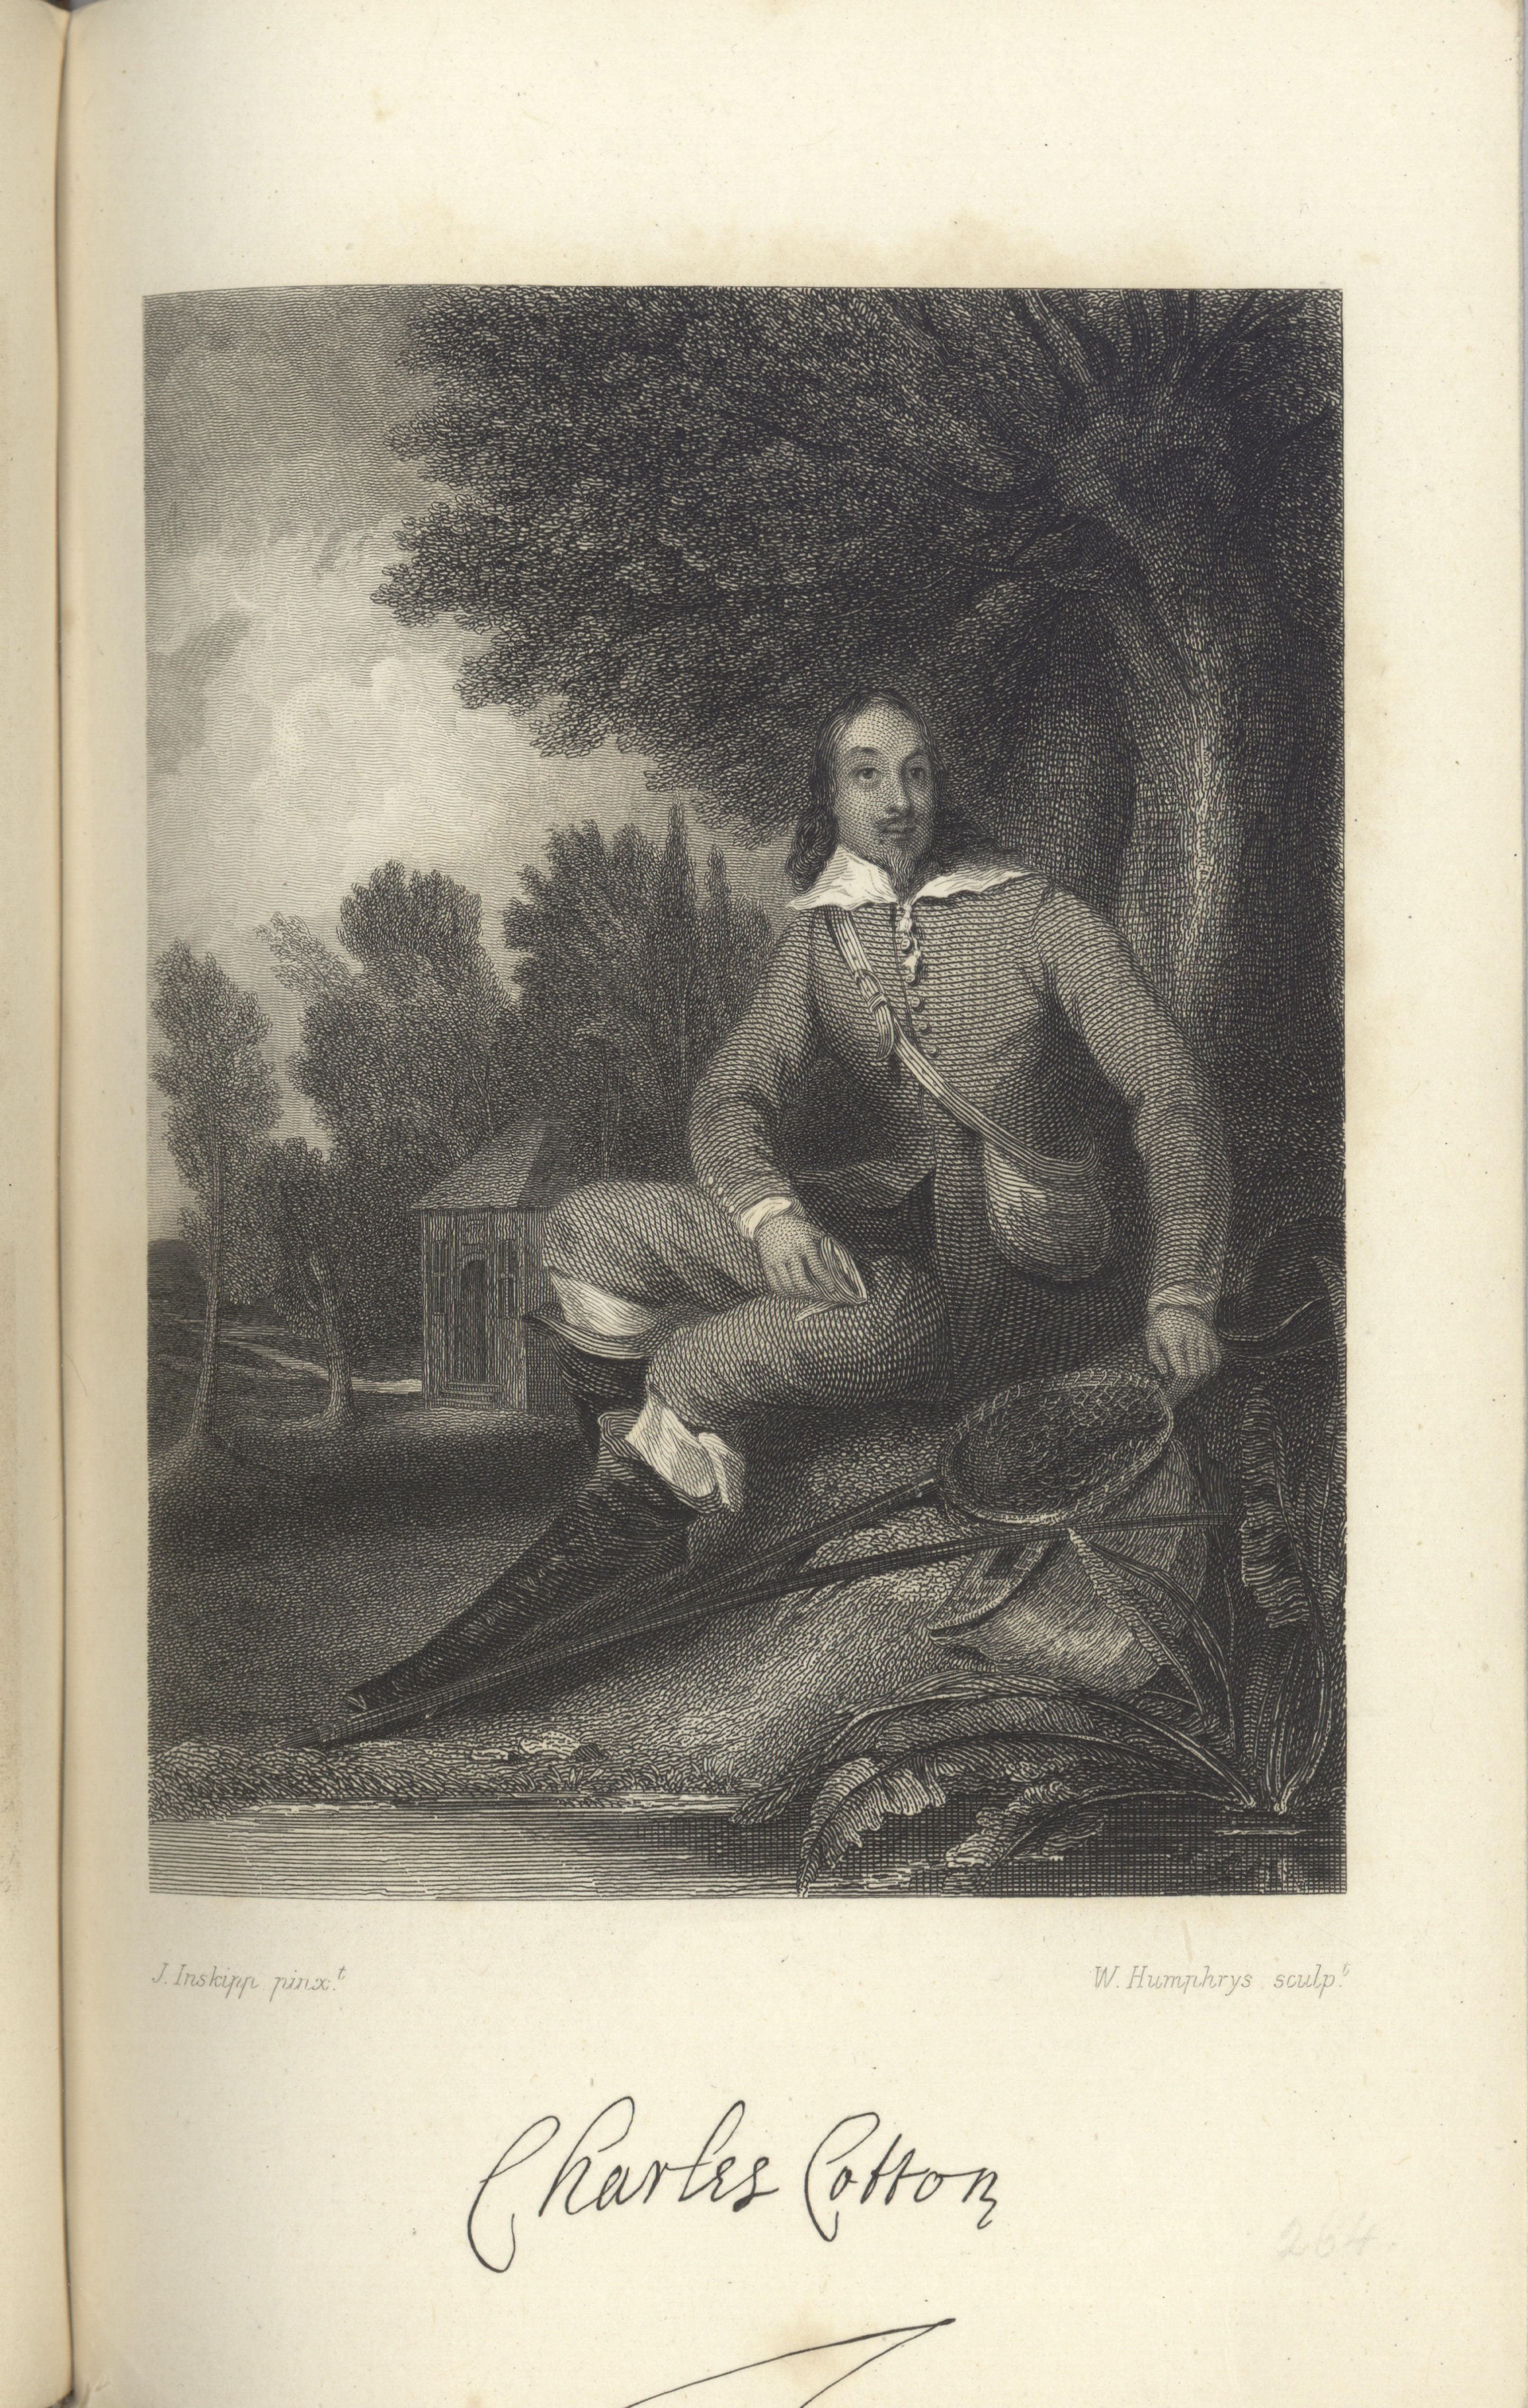 Portrait of Charles Cotton